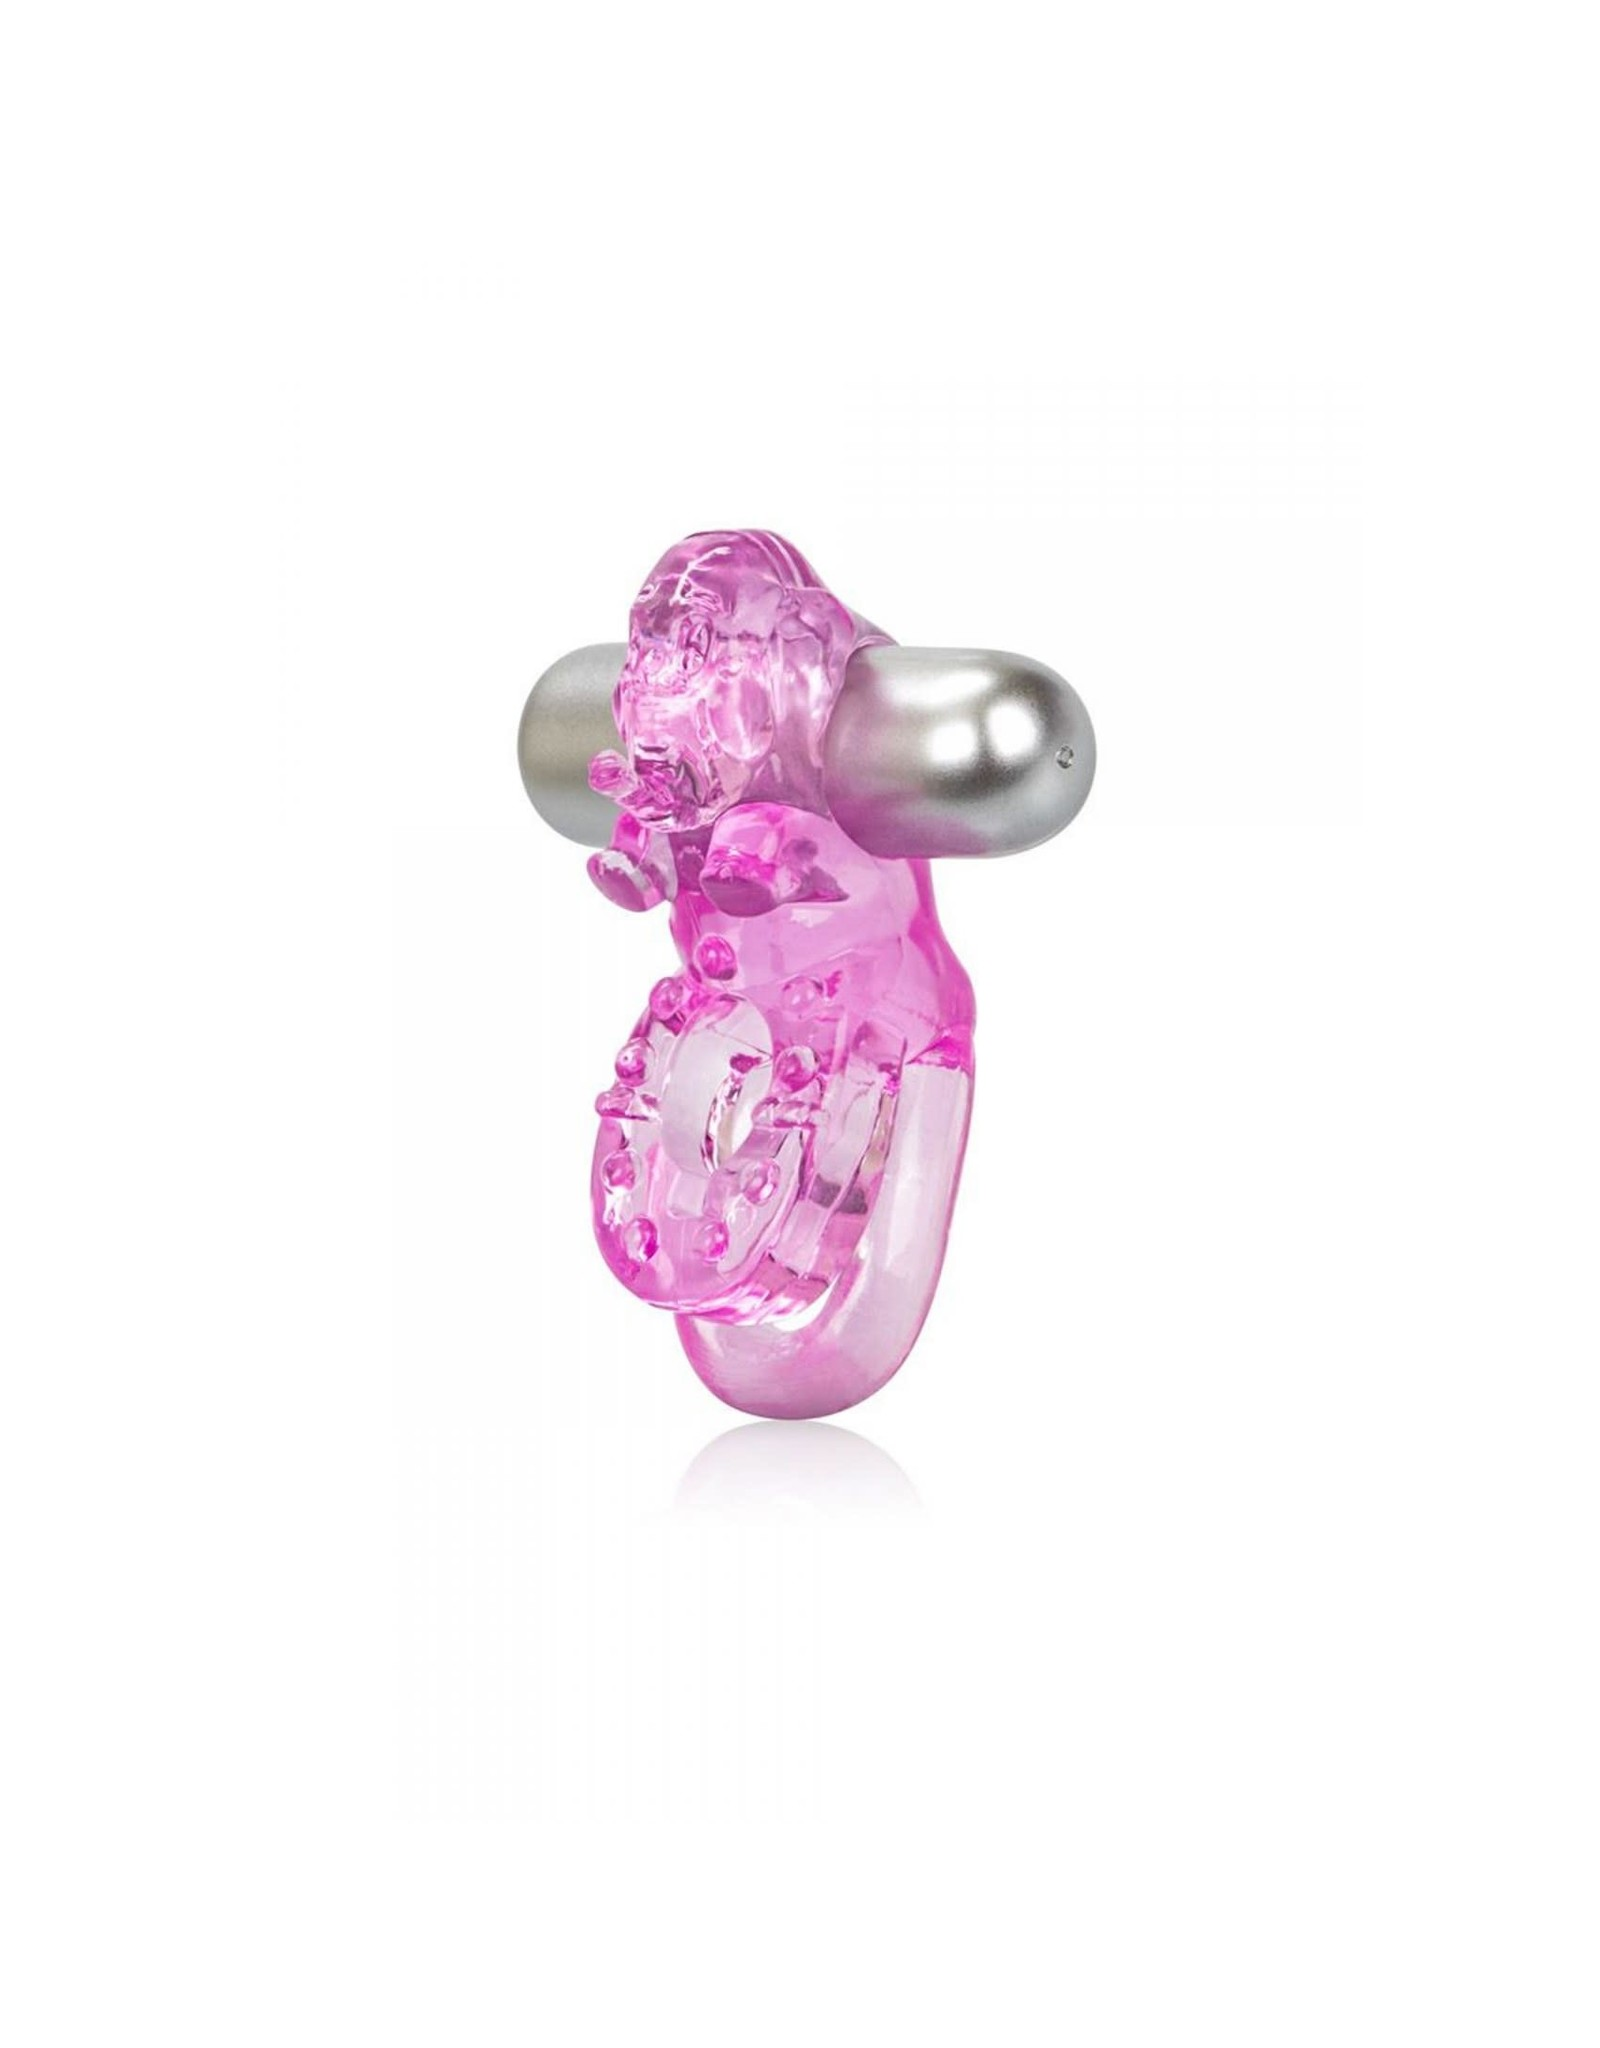 CALEXOTICS - LOVER'S DELIGHT ELE - VIBE COCK RING - PINK